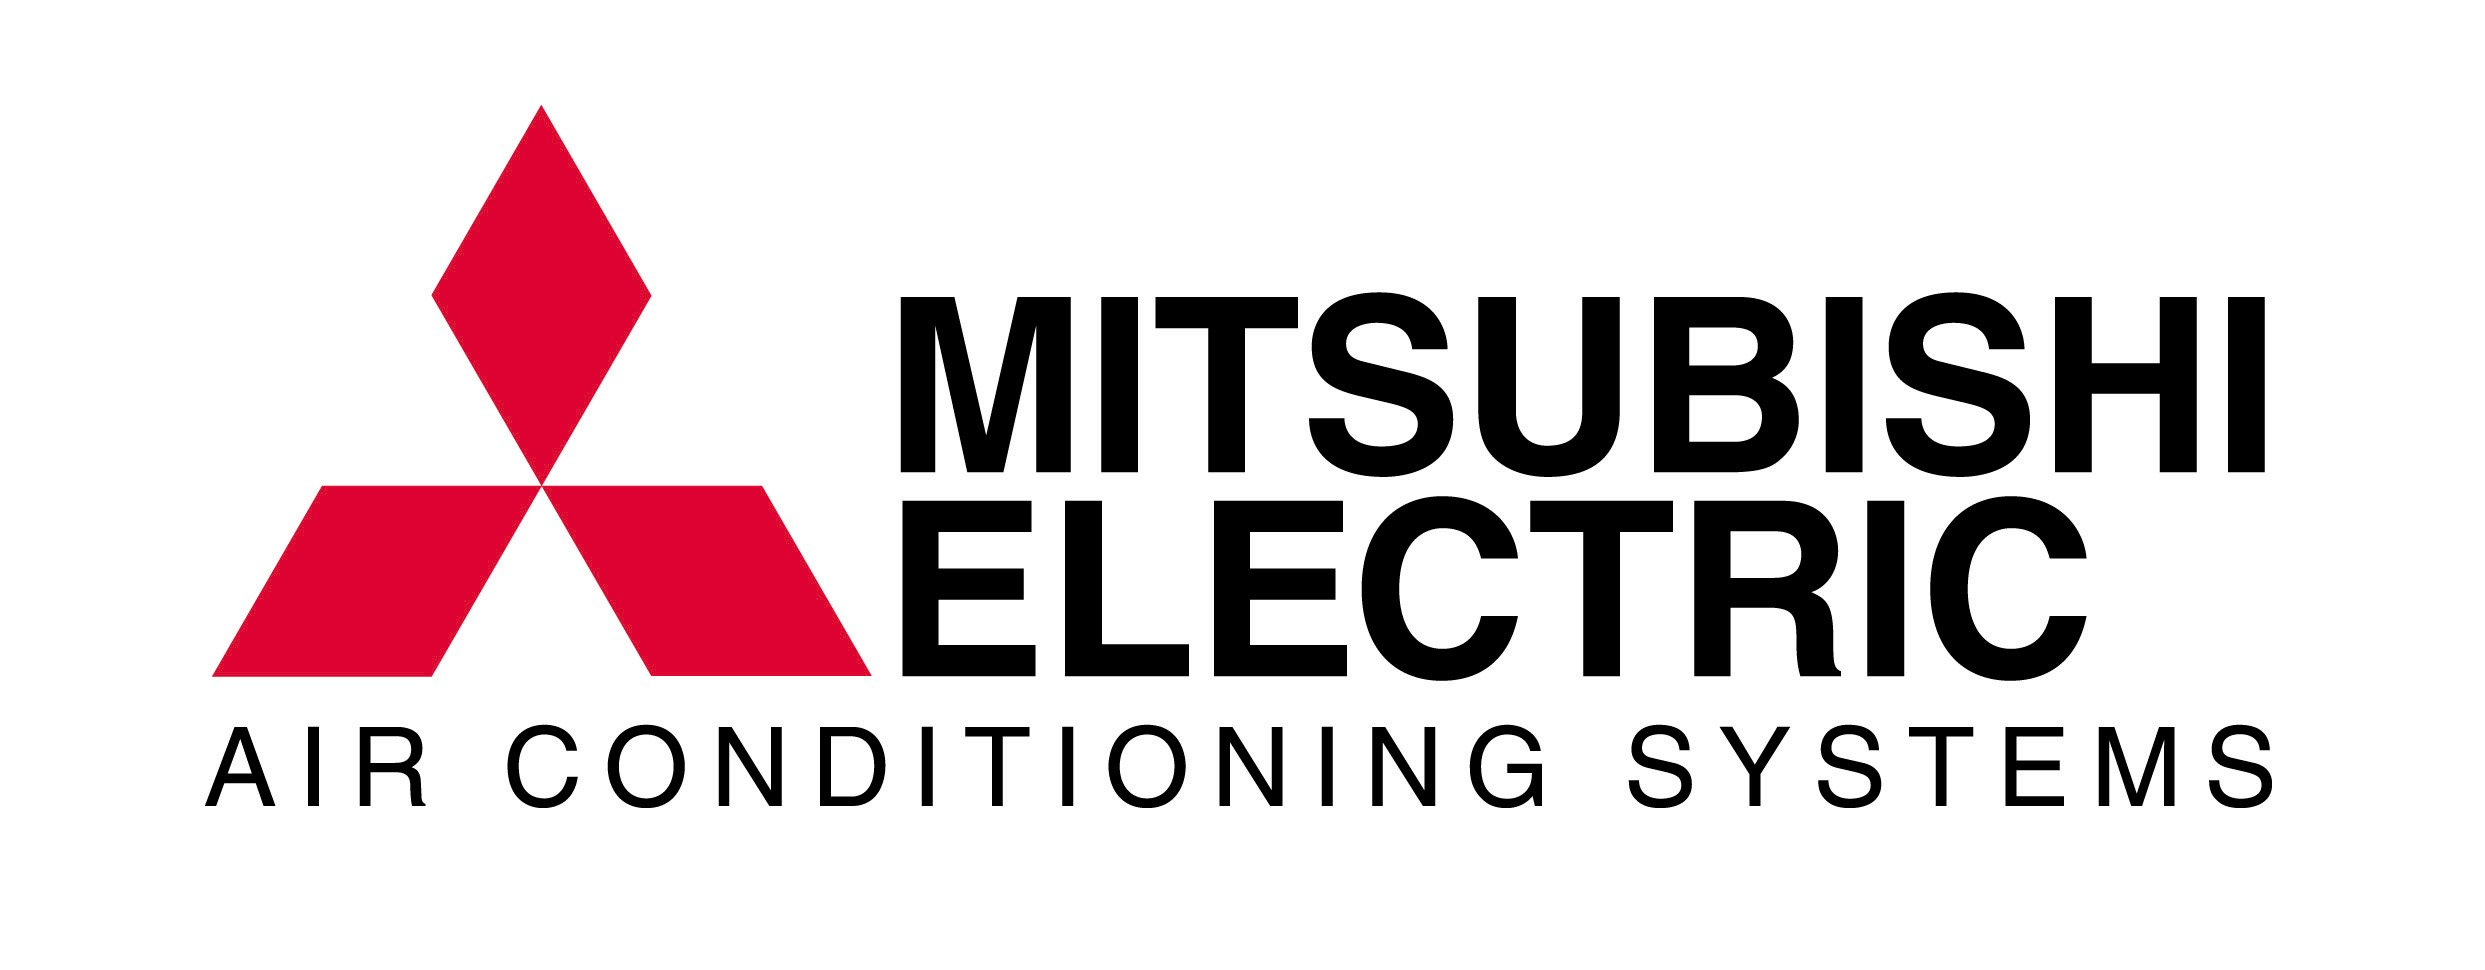 Mitsubishi air conditioning installation products